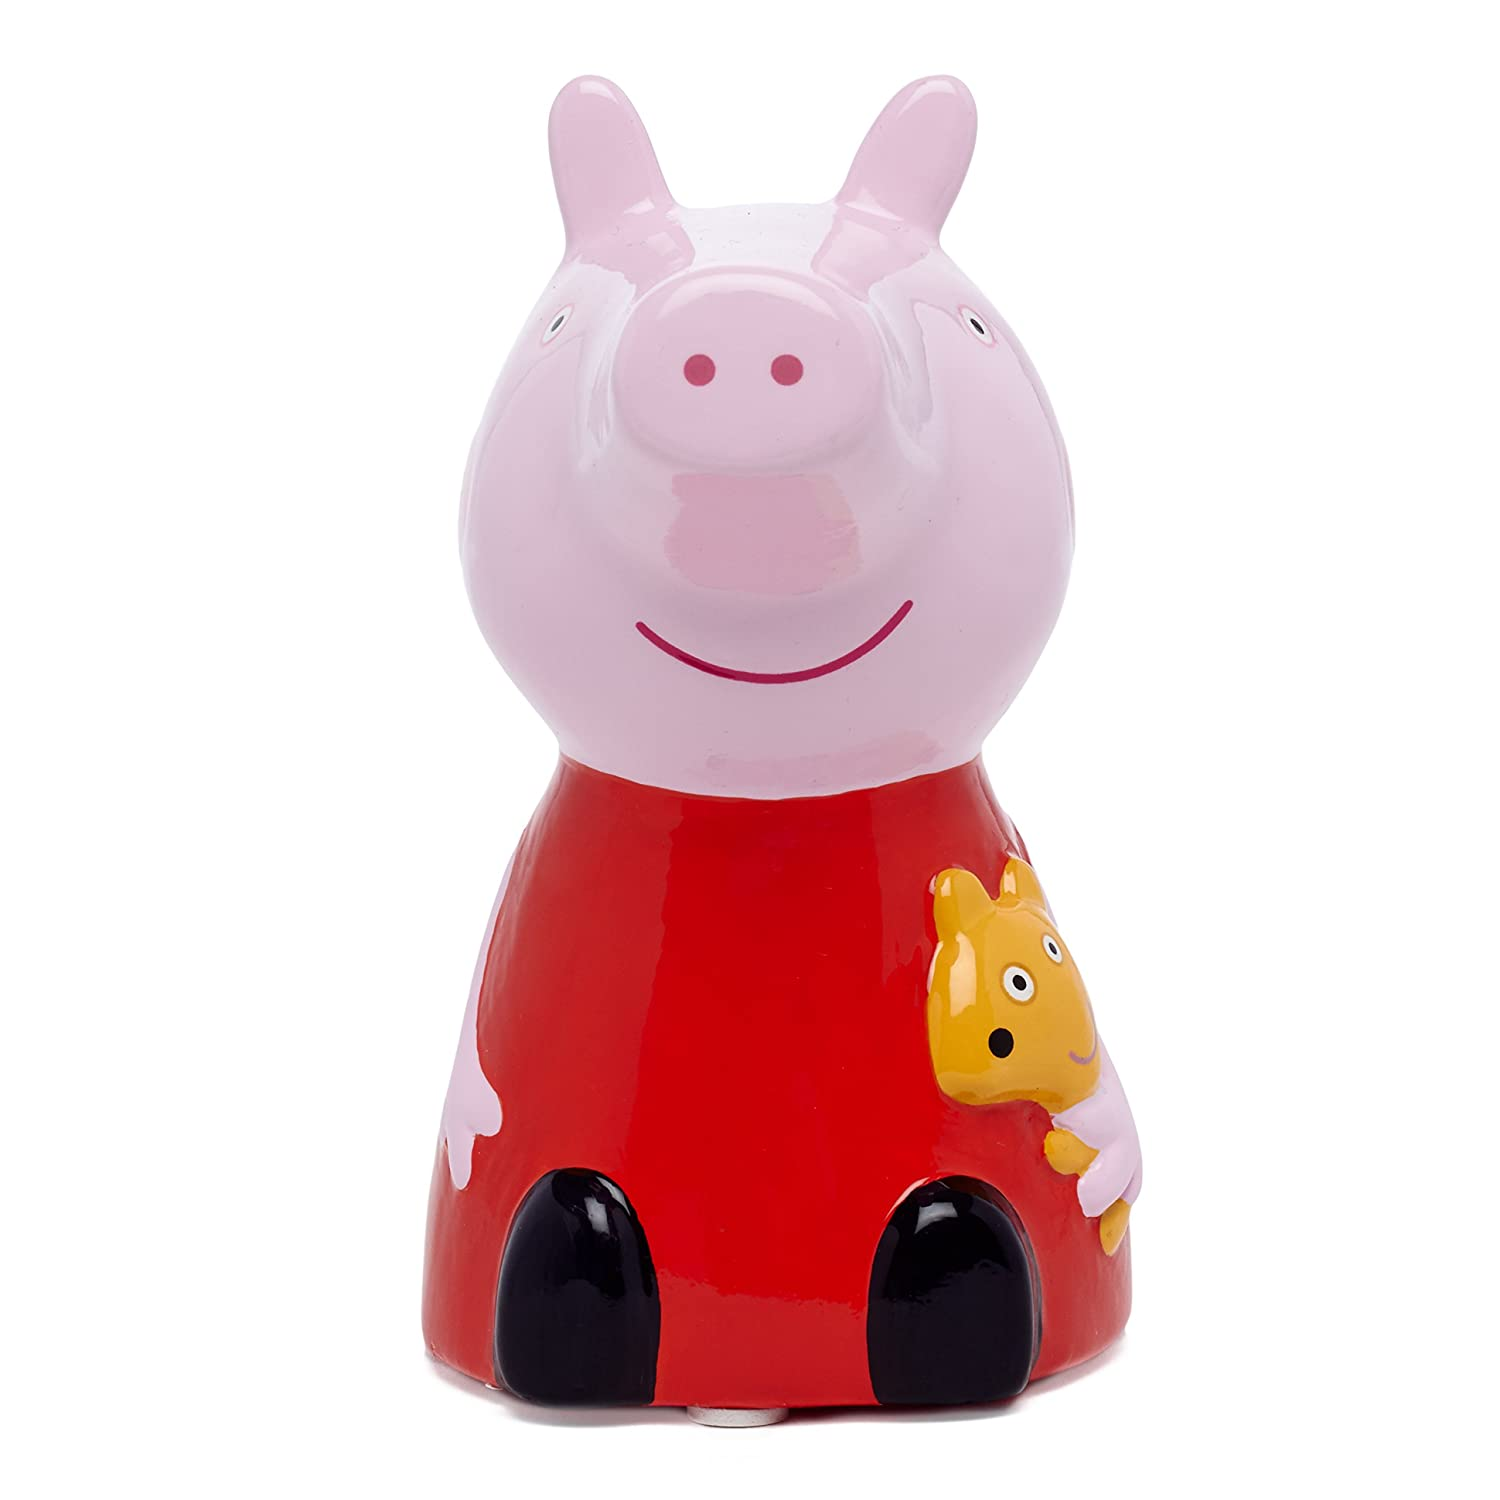 Peppa Pig Ceramic Bank FAB Starpoint